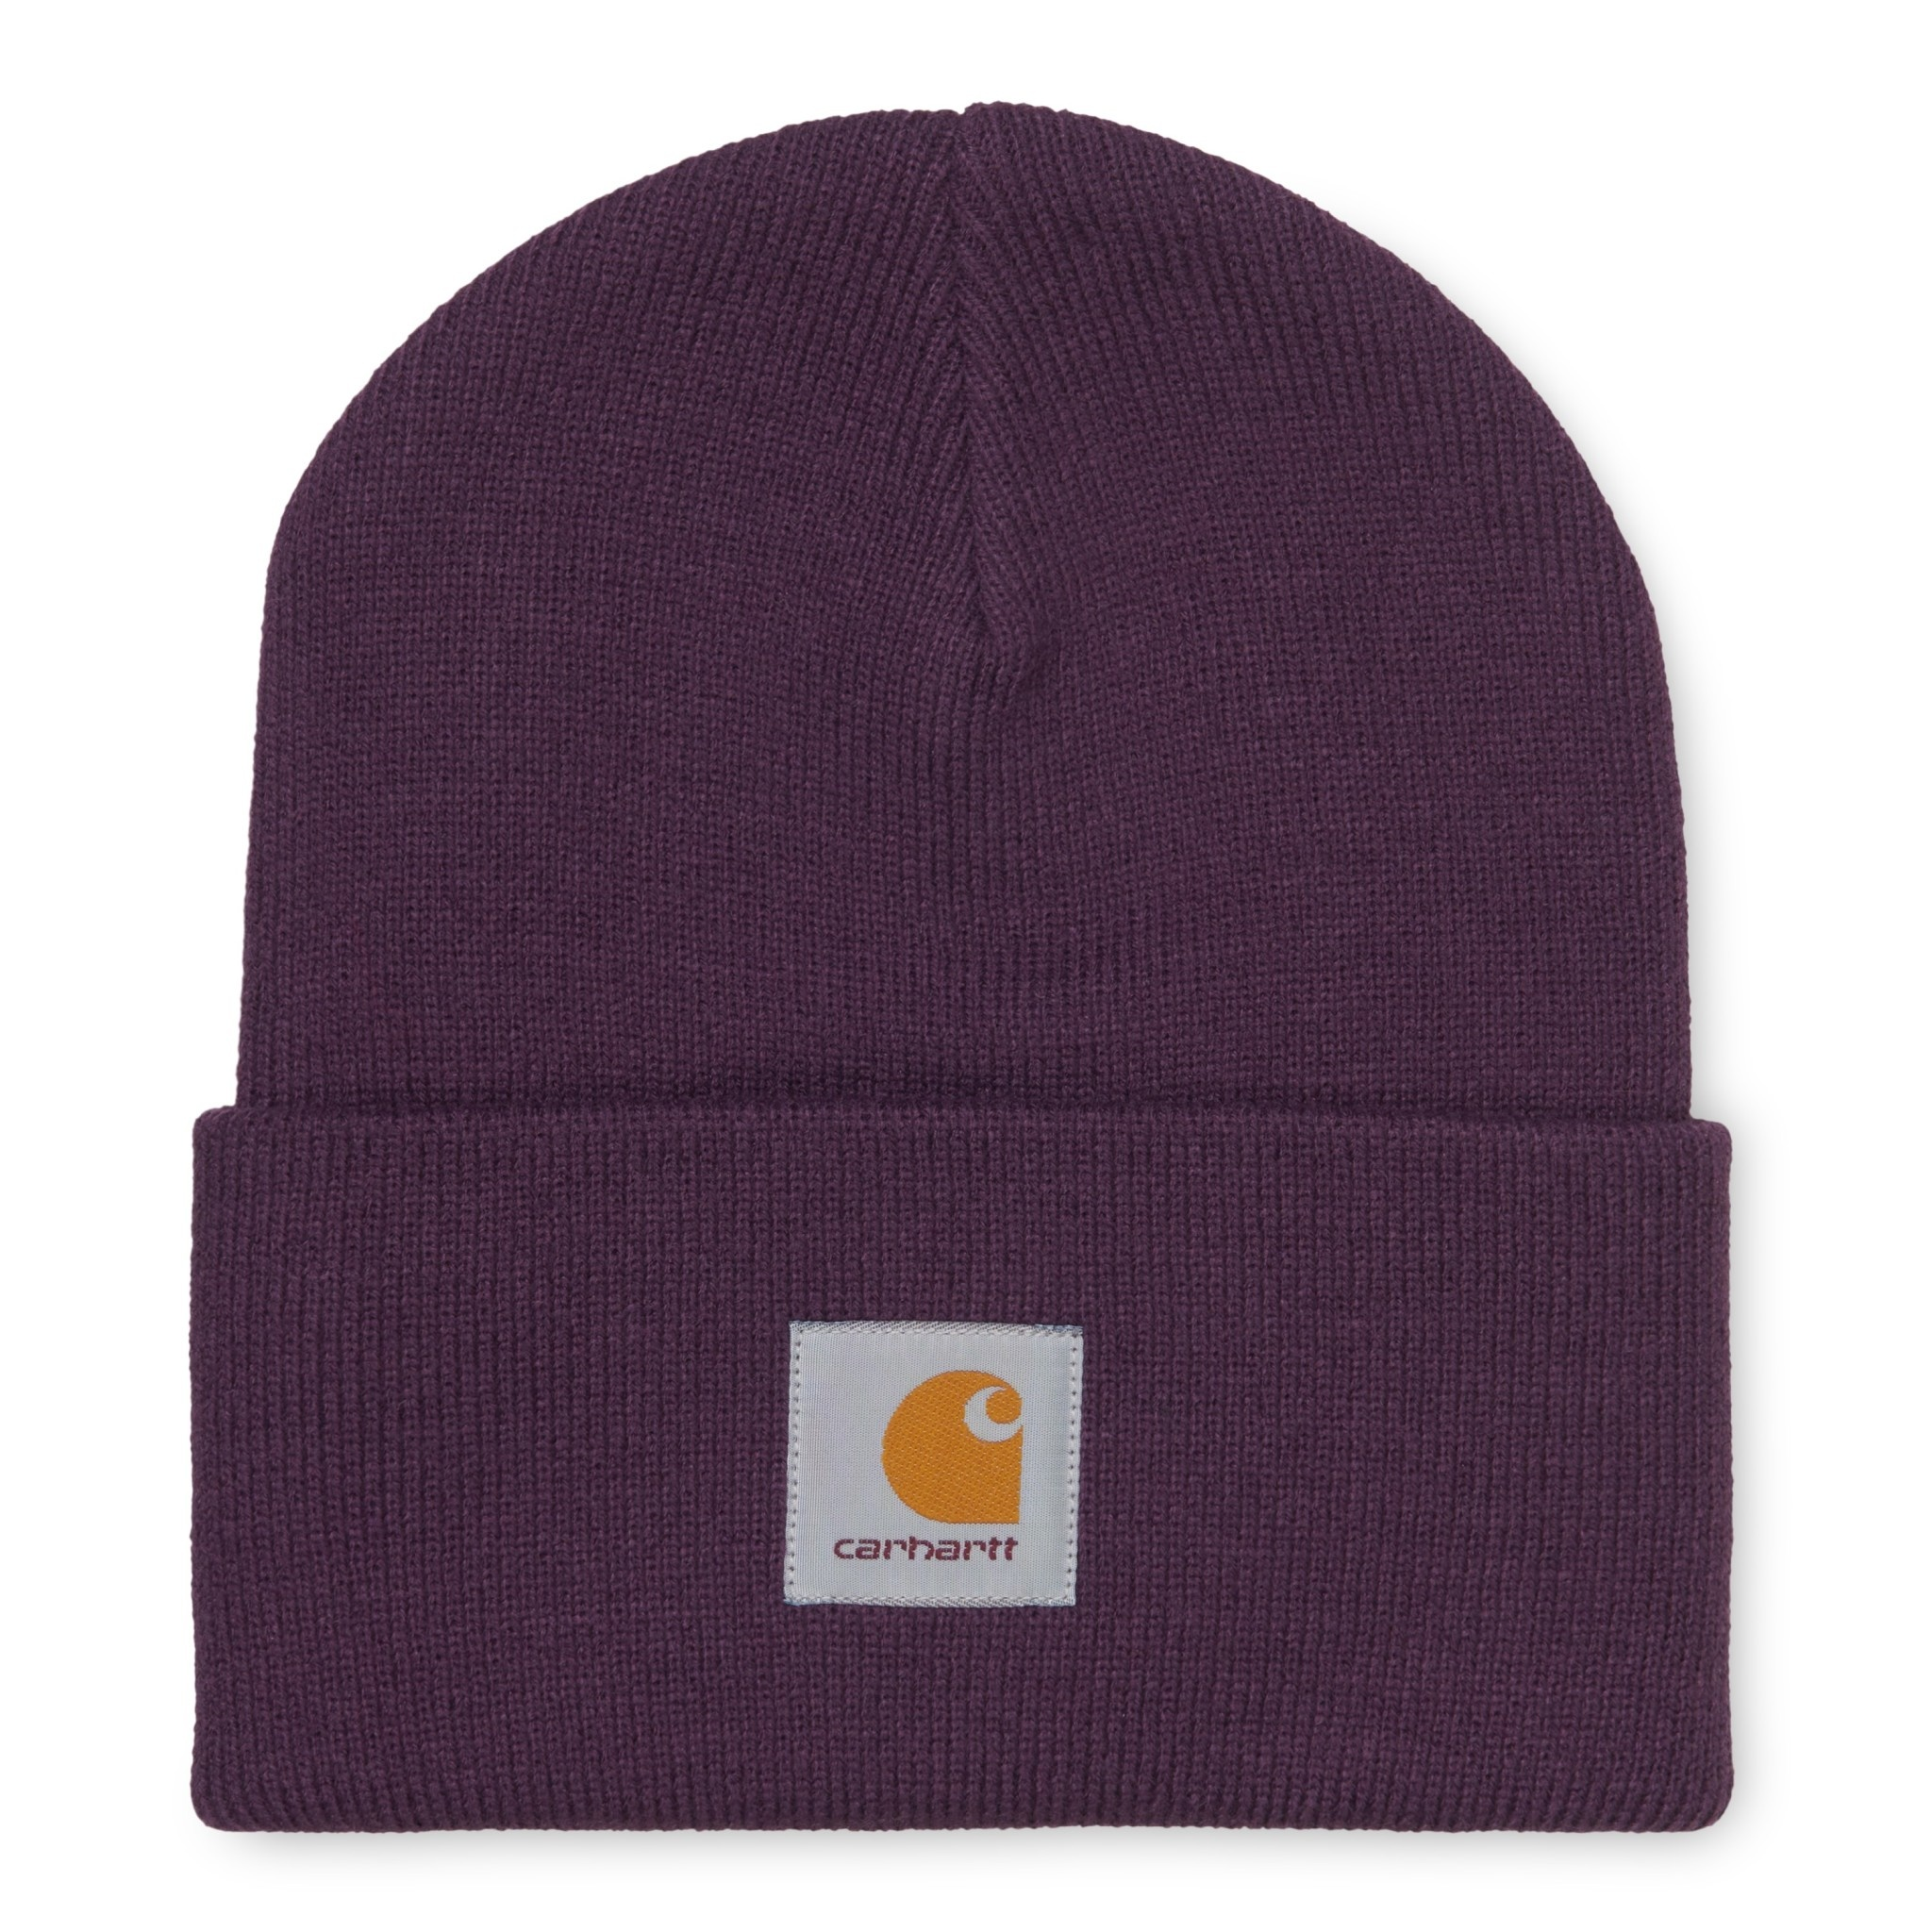 Carhartt Work In Progress Acrylic Watch Beanie in Boysenberry